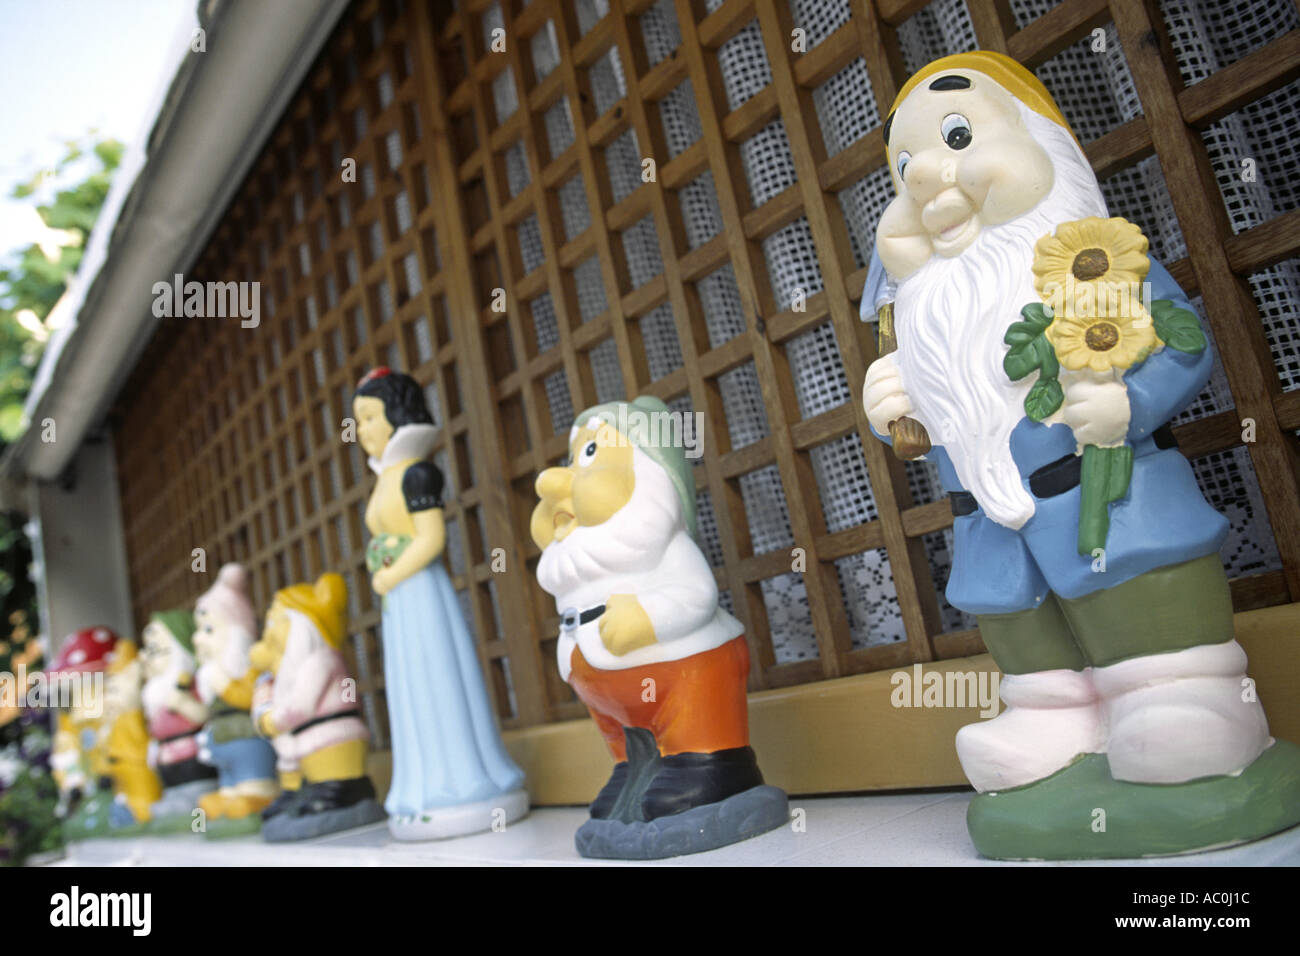 Little statues of Snow White and the seven dwarfs line the edge of a wall of a house in Grado, Italy. - Stock Image